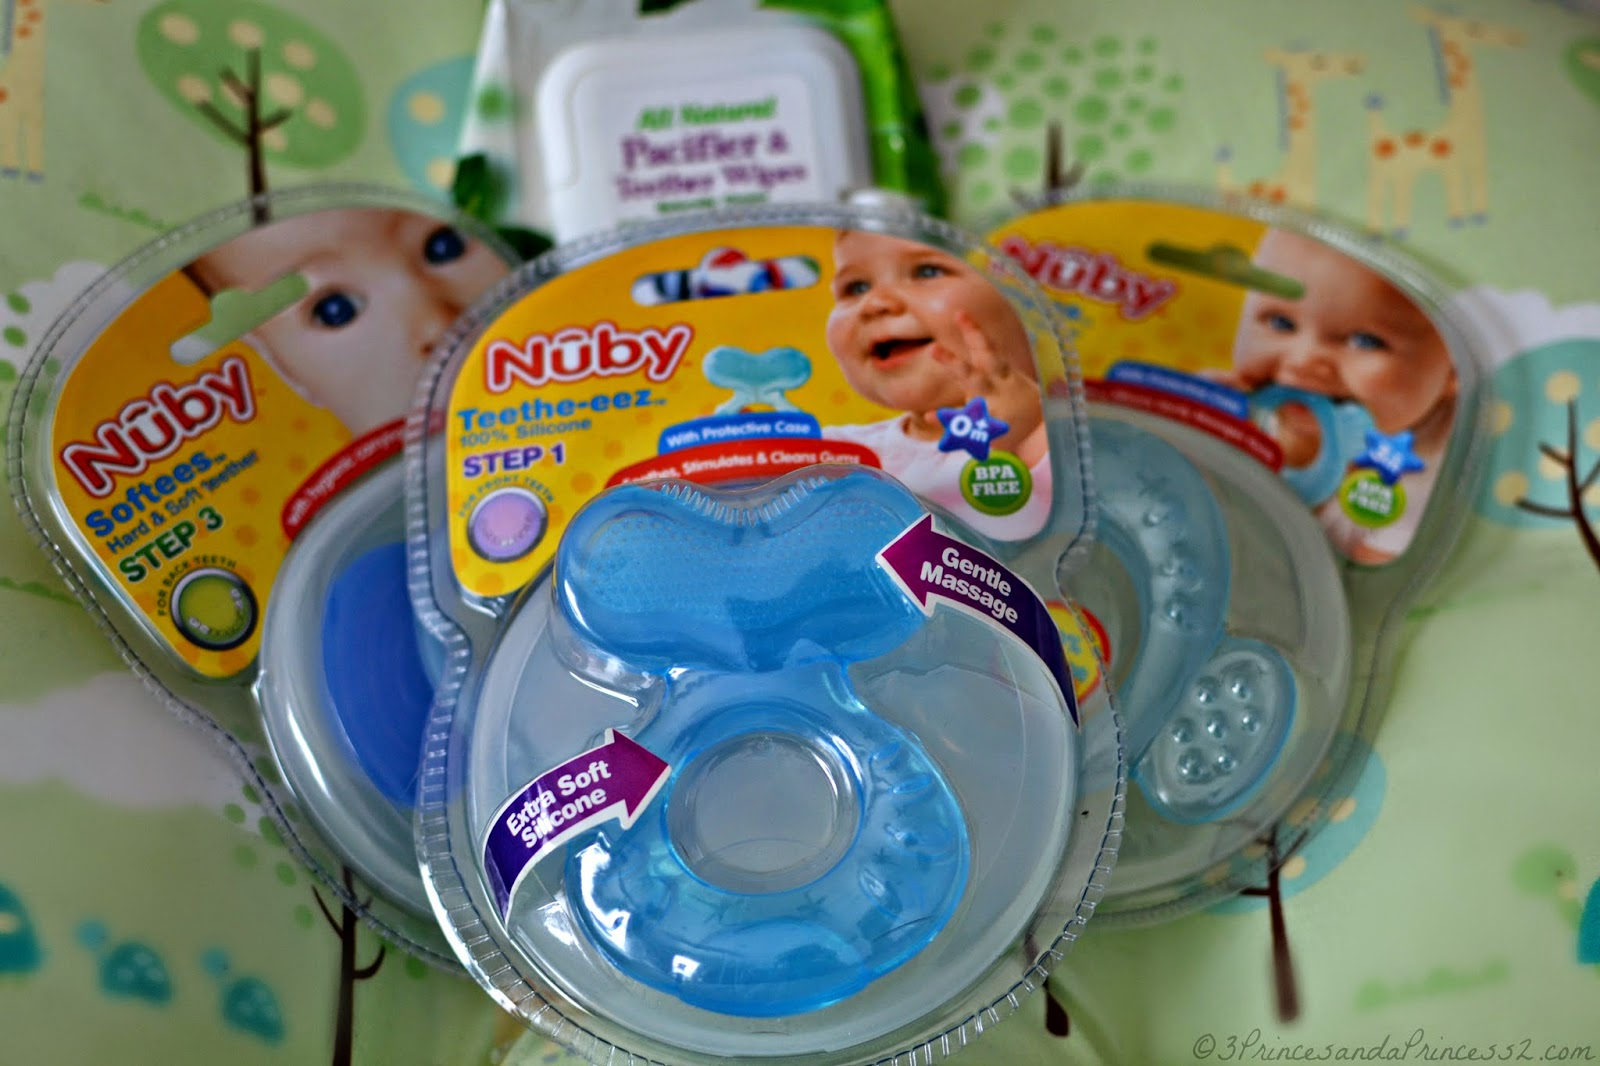 Nuby 3-Stage Teething System with Wipes